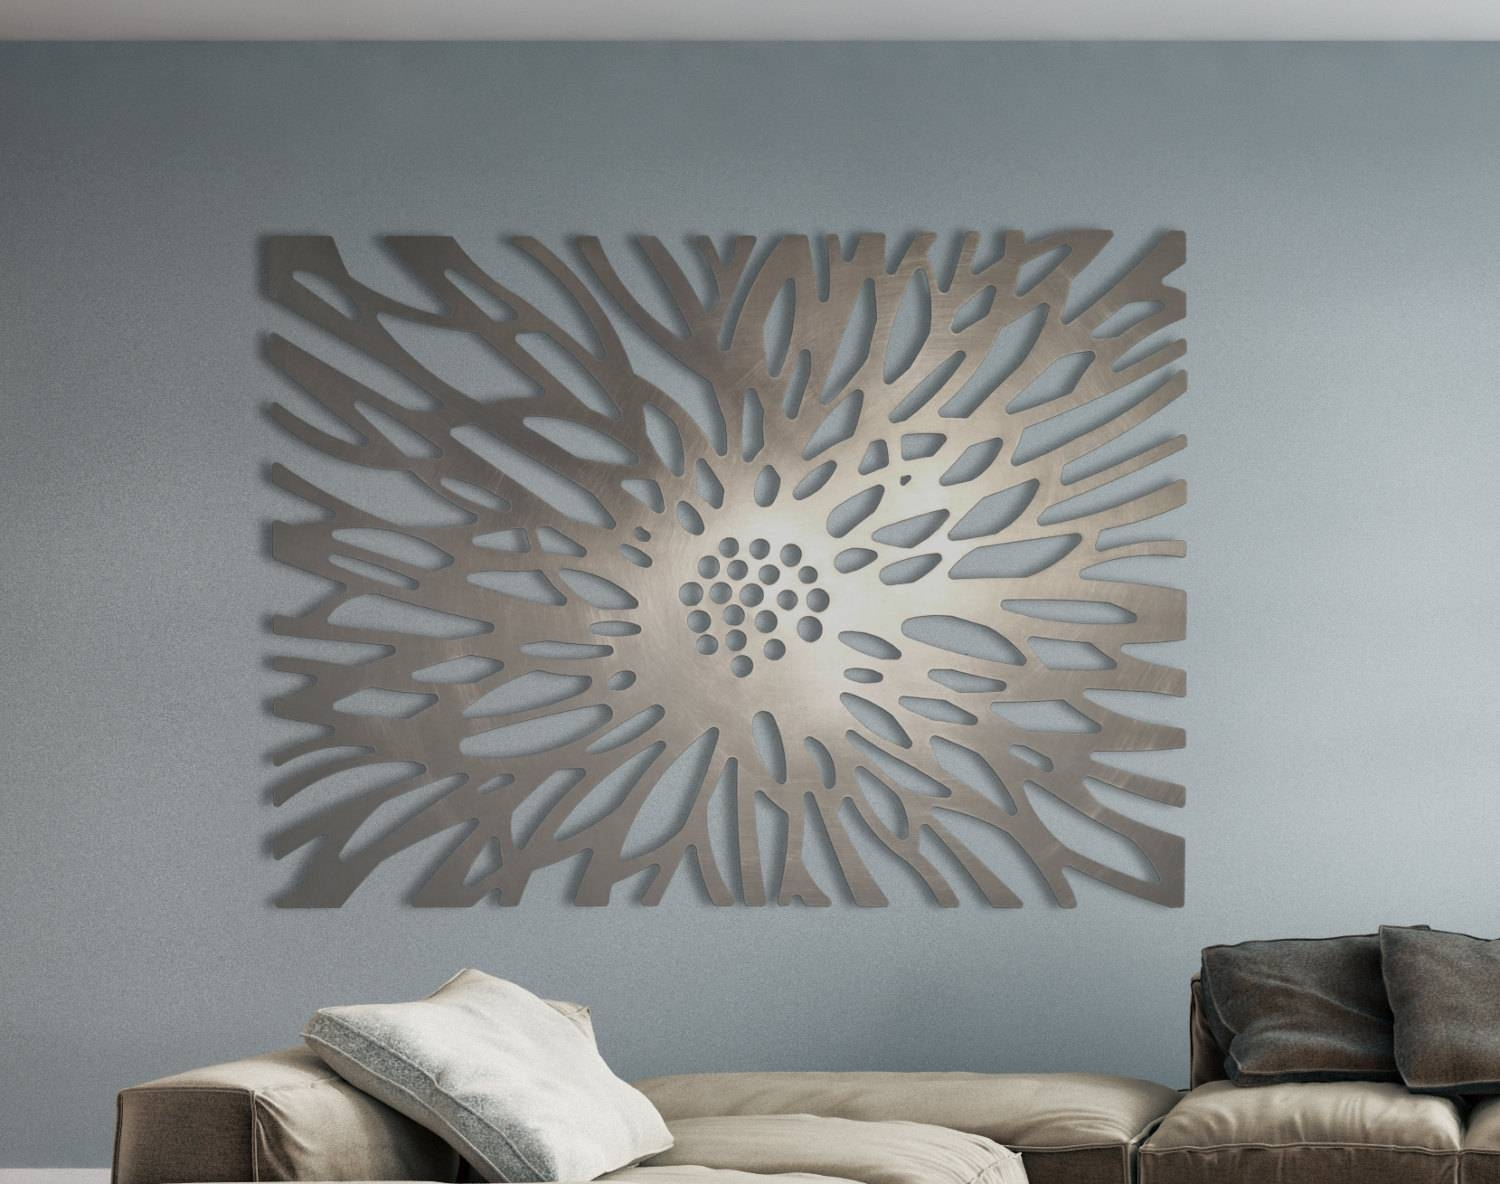 Laser Cut Metal Decorative Wall Art Panel Sculpture For Home With Recent Outdoor Metal Wall Art Panels (View 10 of 20)